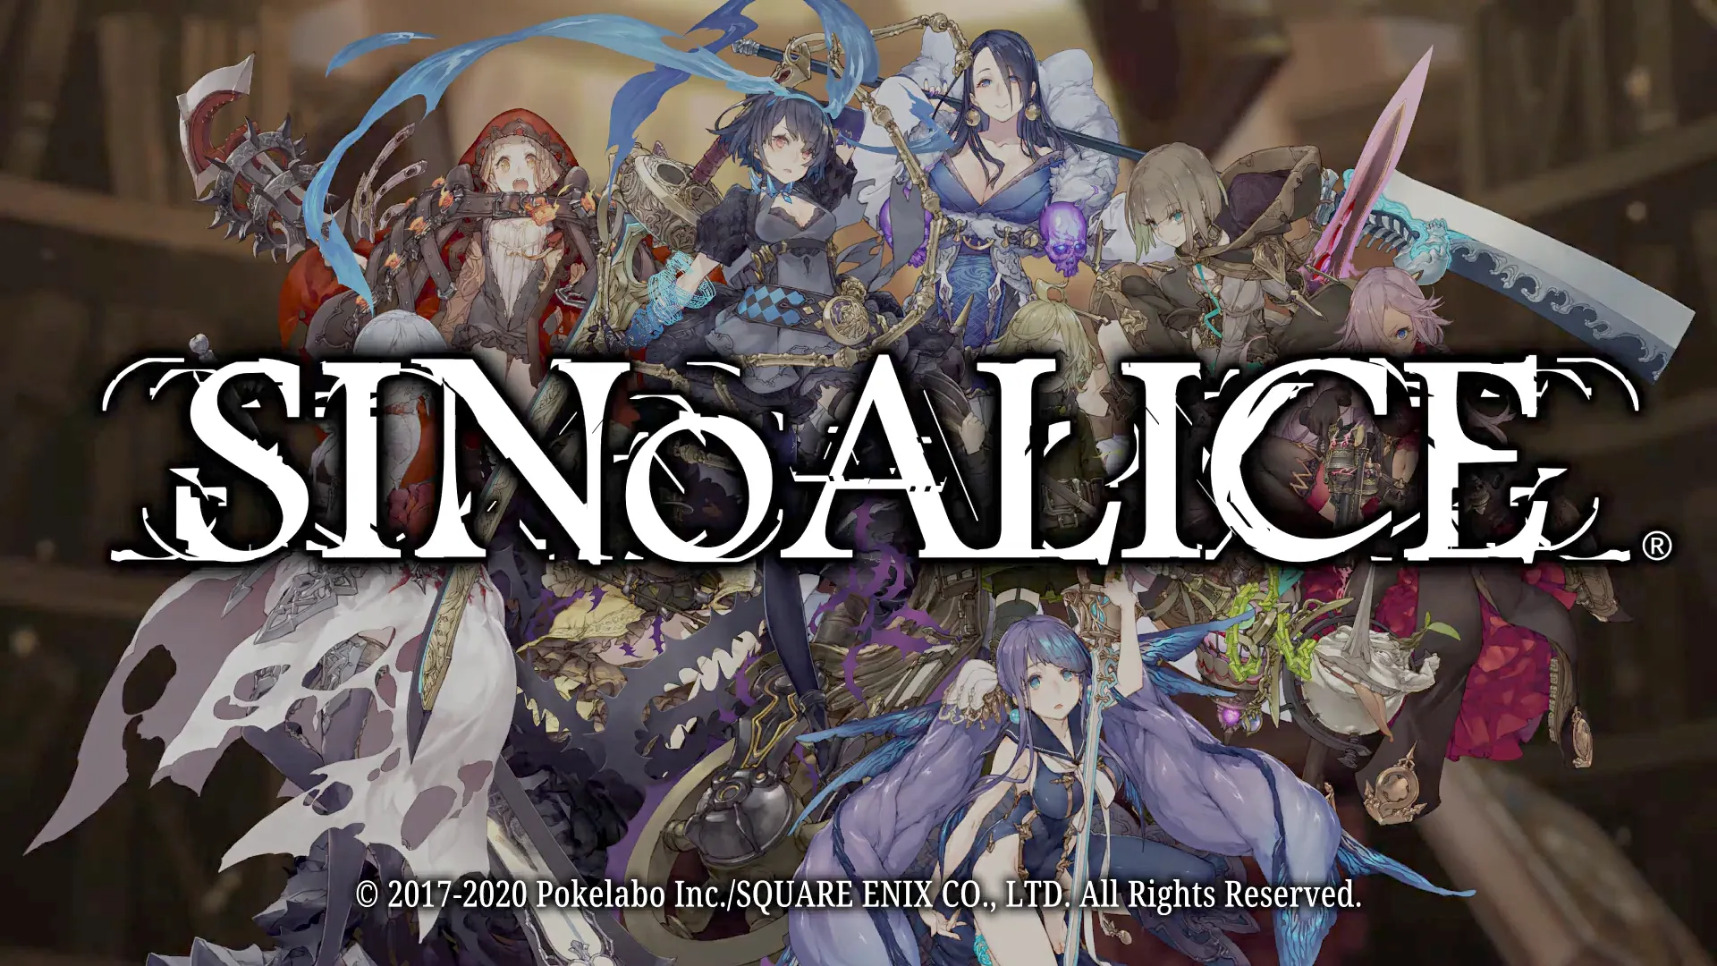 SINoALICE, pre-registrations open »Let's talk about video games